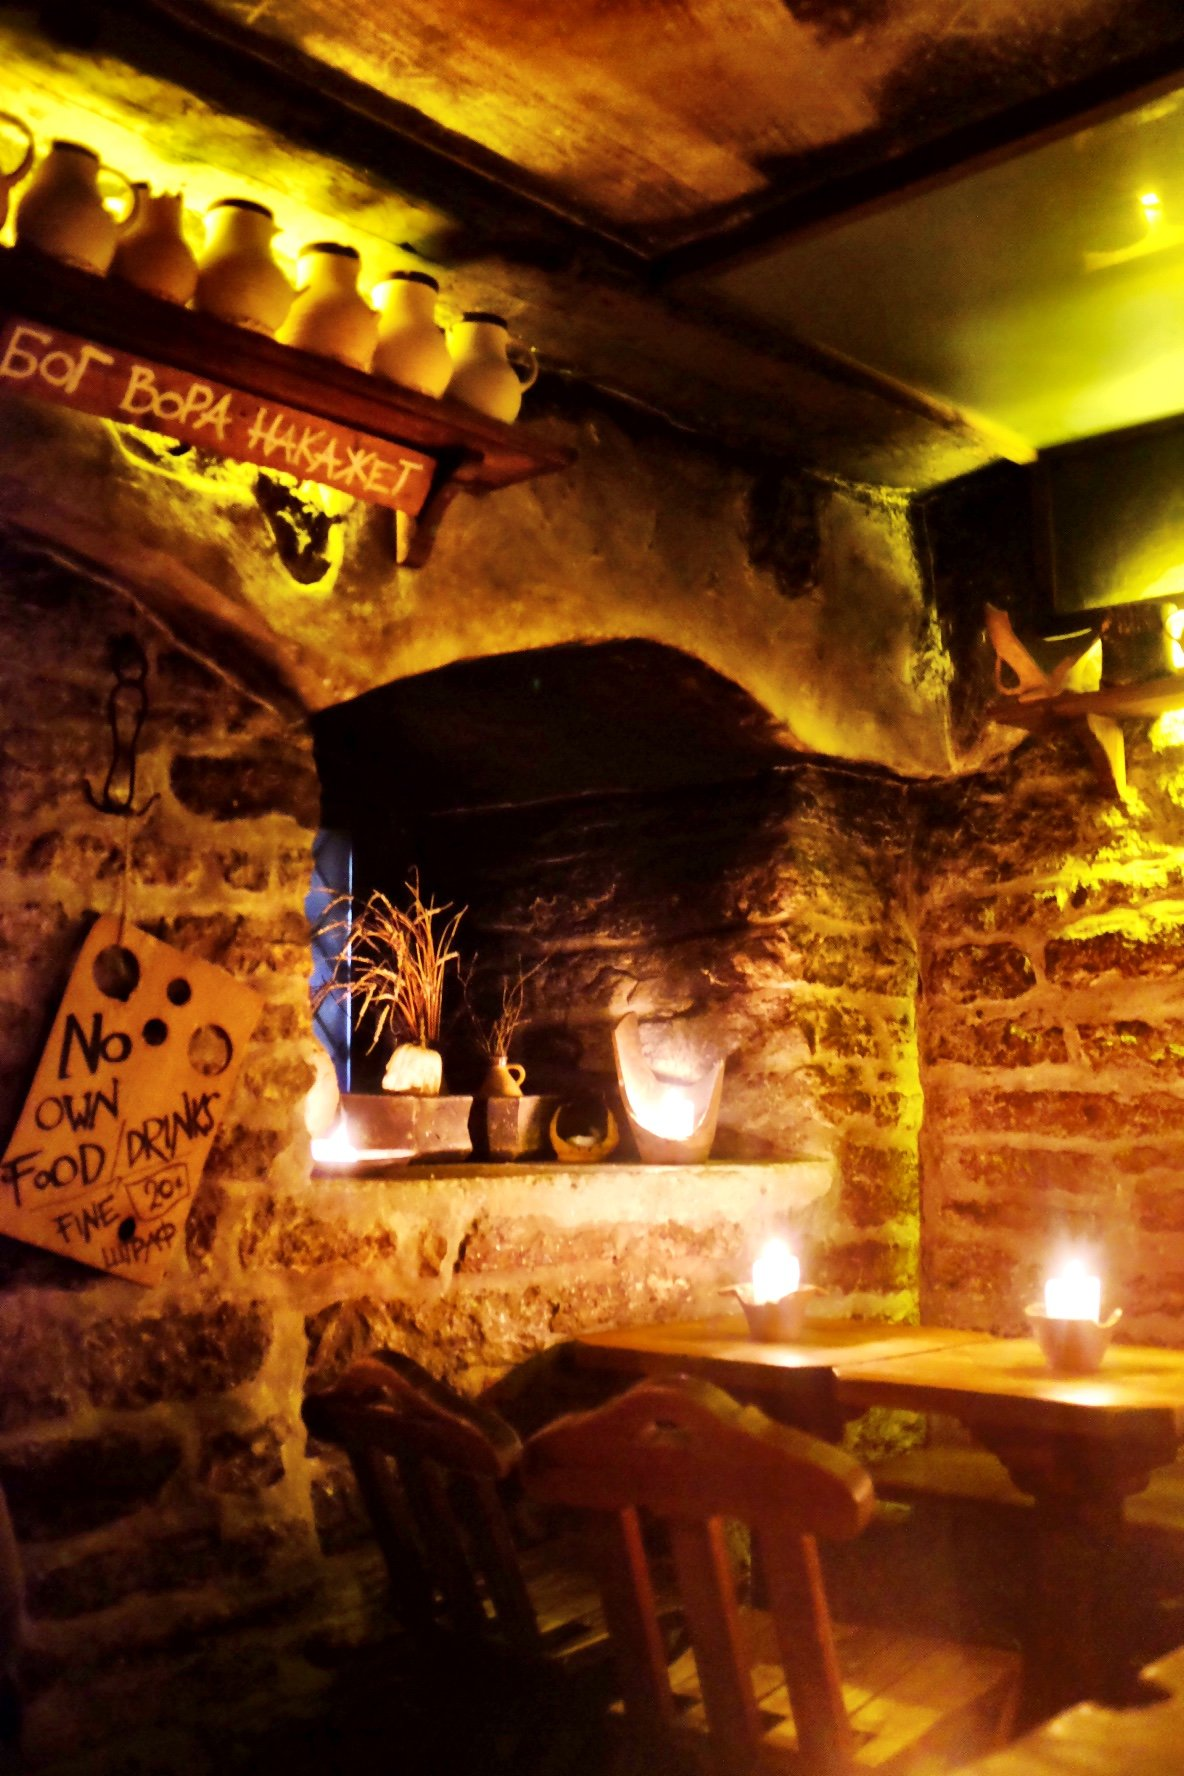 The inside of the Draakon. The room, made of stone bricks, is illuminated by candles and there is a medieval decor in form of ceramic mugs and plants. Found in Tallinn